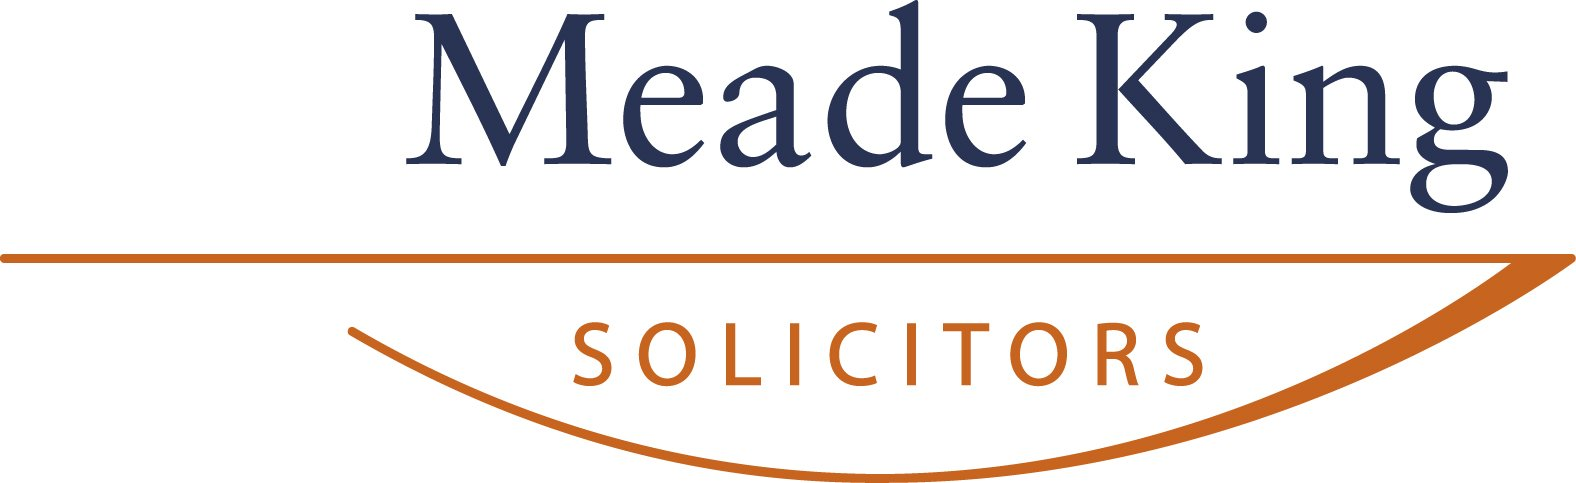 Meade King Solicitors logo